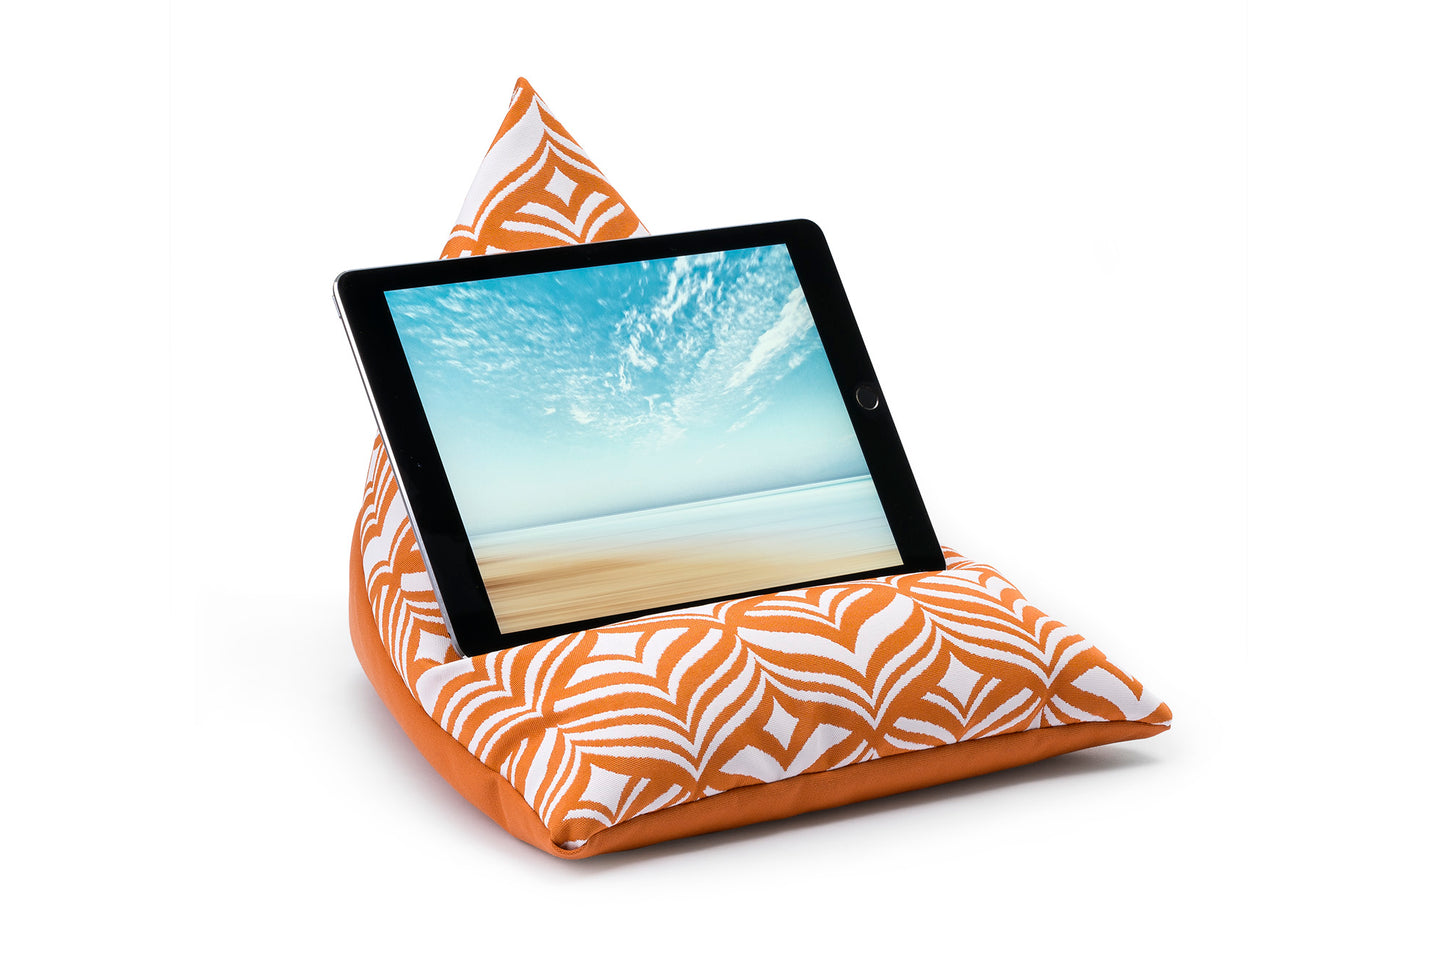 iPad, Tablet & eReader Bean Bag Stand in Tulip Orange/Orange Base armadillosun